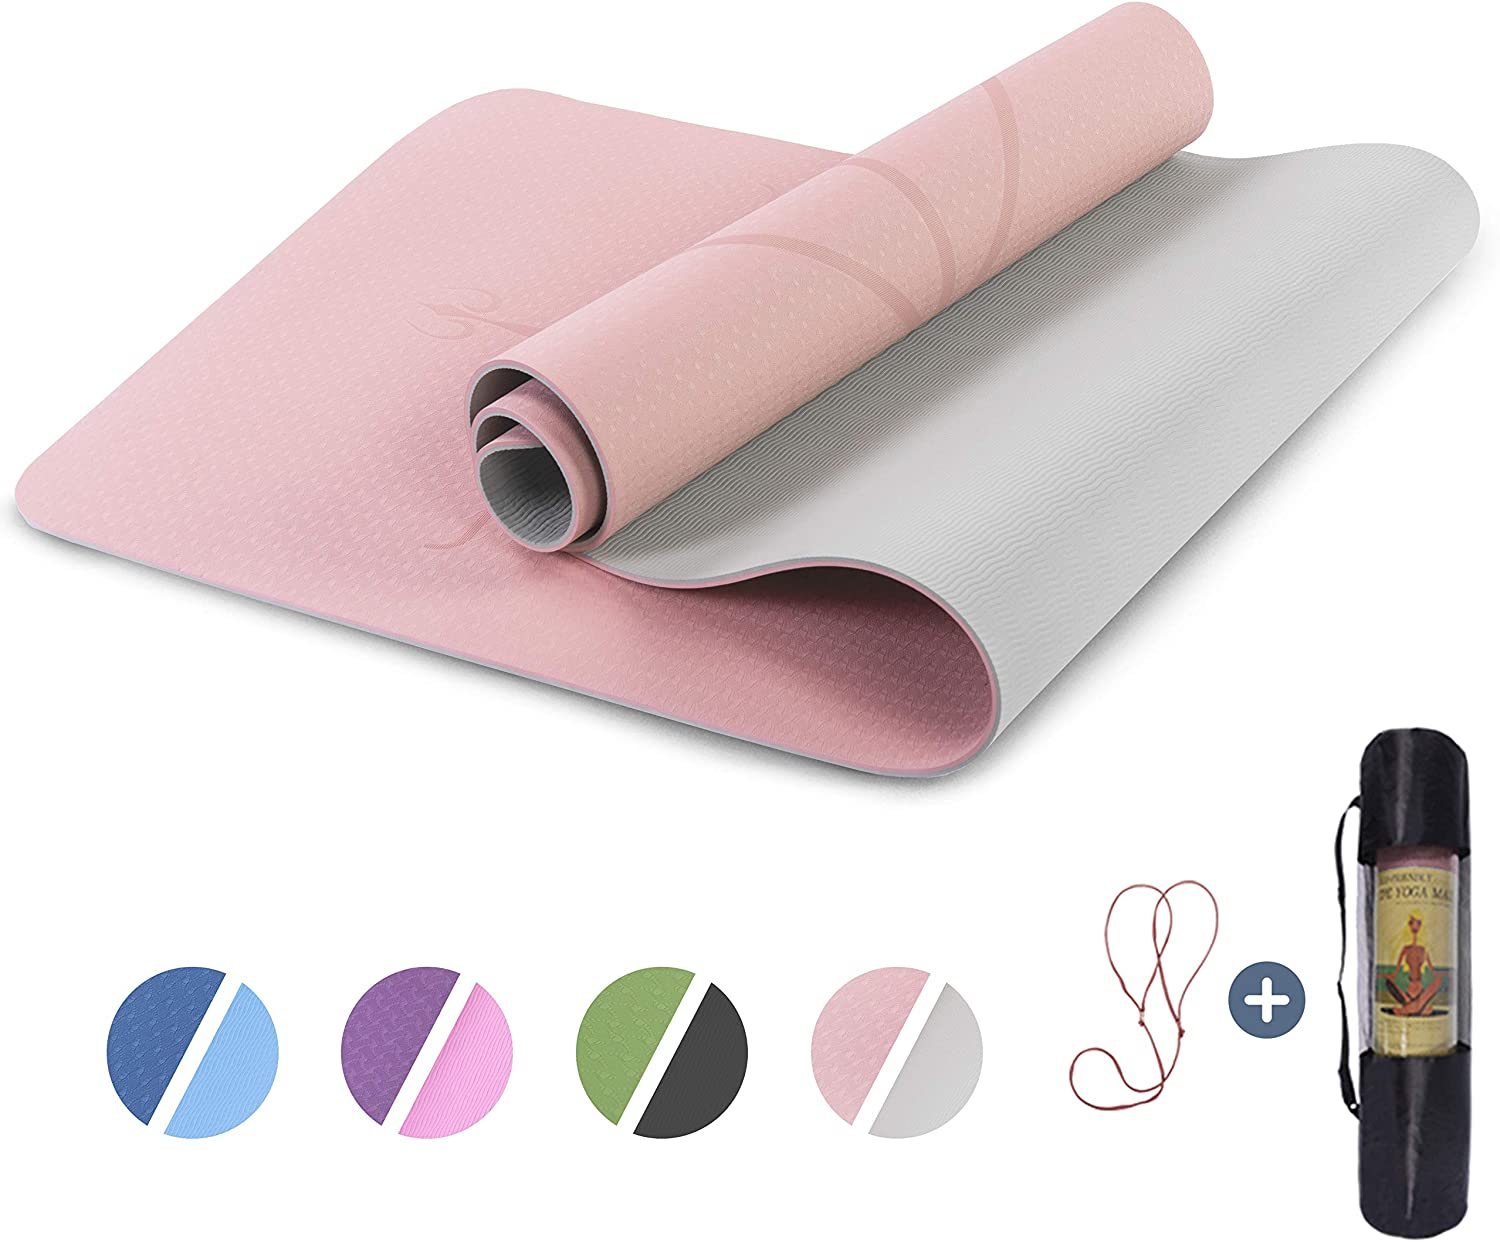 """Yoga Mat Non Slip, Pilates Fitness Mats with Alignment Marks, Eco Friendly, Anti-Tear Yoga Mats for Women, 1/4"""" Exercise Mats for Home Workout with Carrying Strap : Sports & Outdoors"""